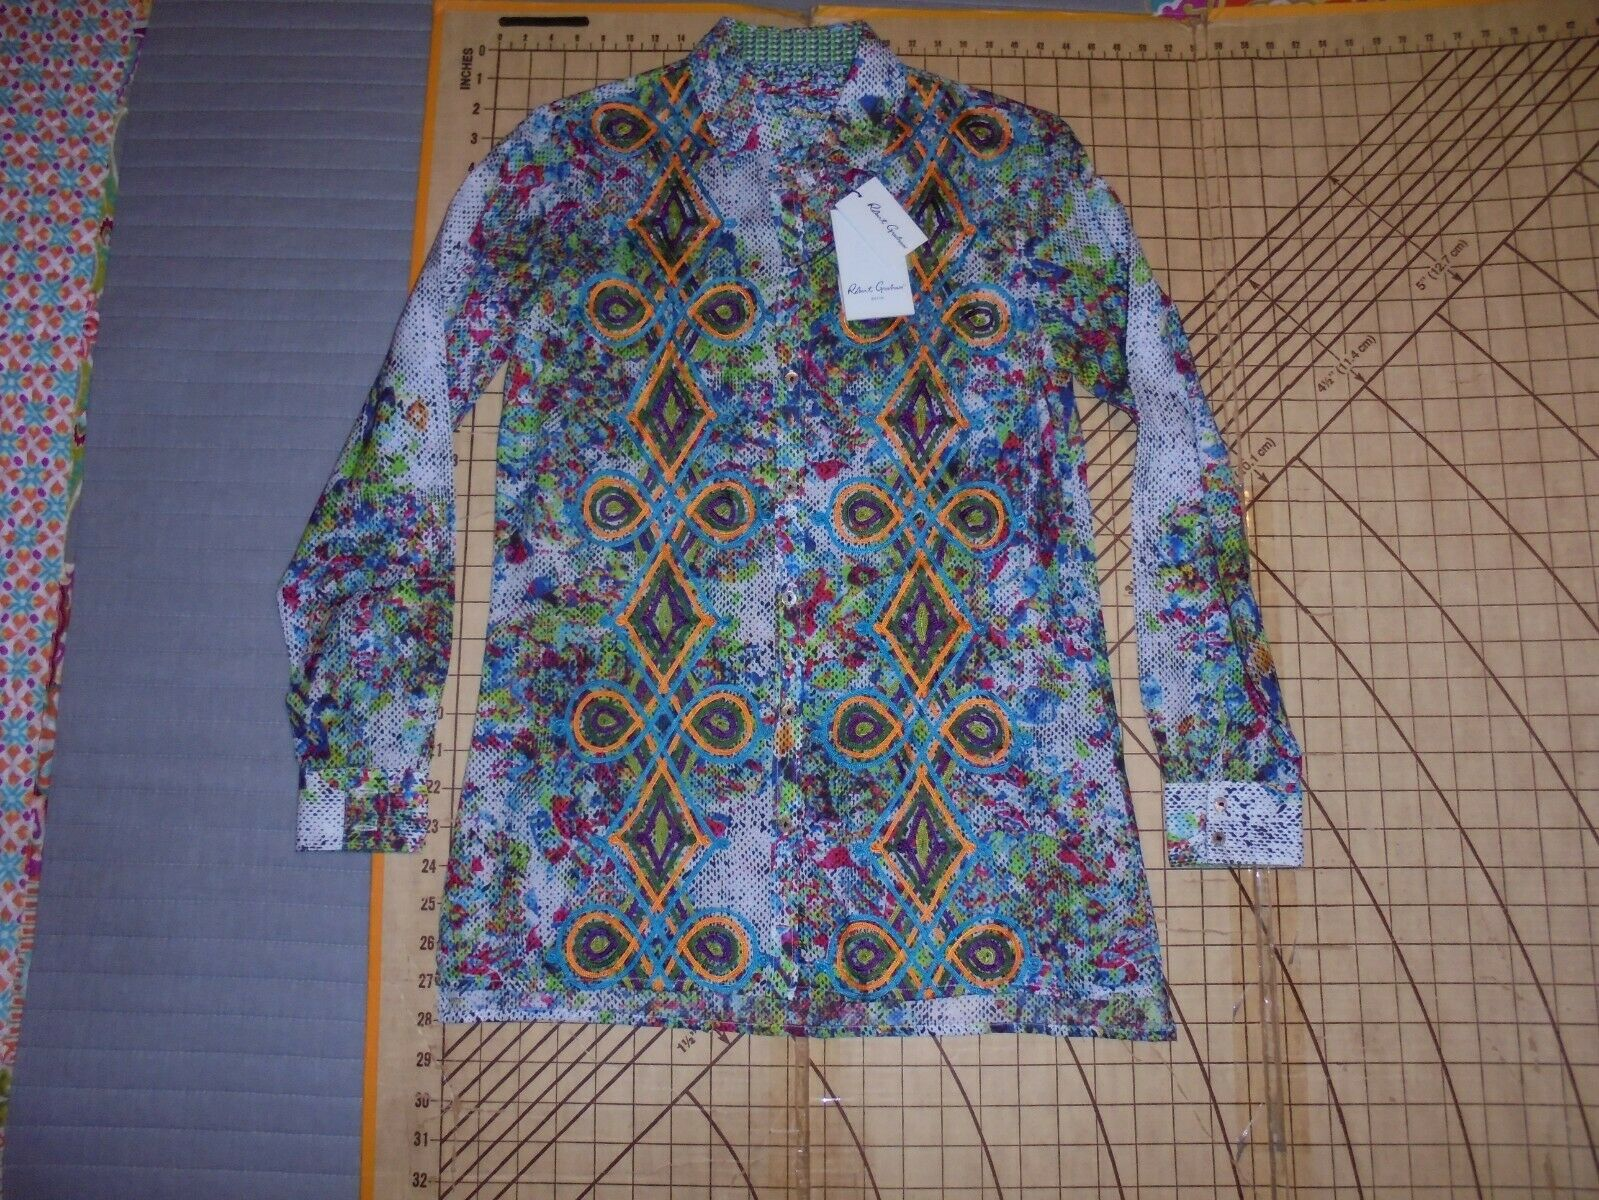 damen XSMALL ROBERT GRAHAM LTD EDITION 17 150 LONG SLEEVE BLOUSE SHIRT - NWT